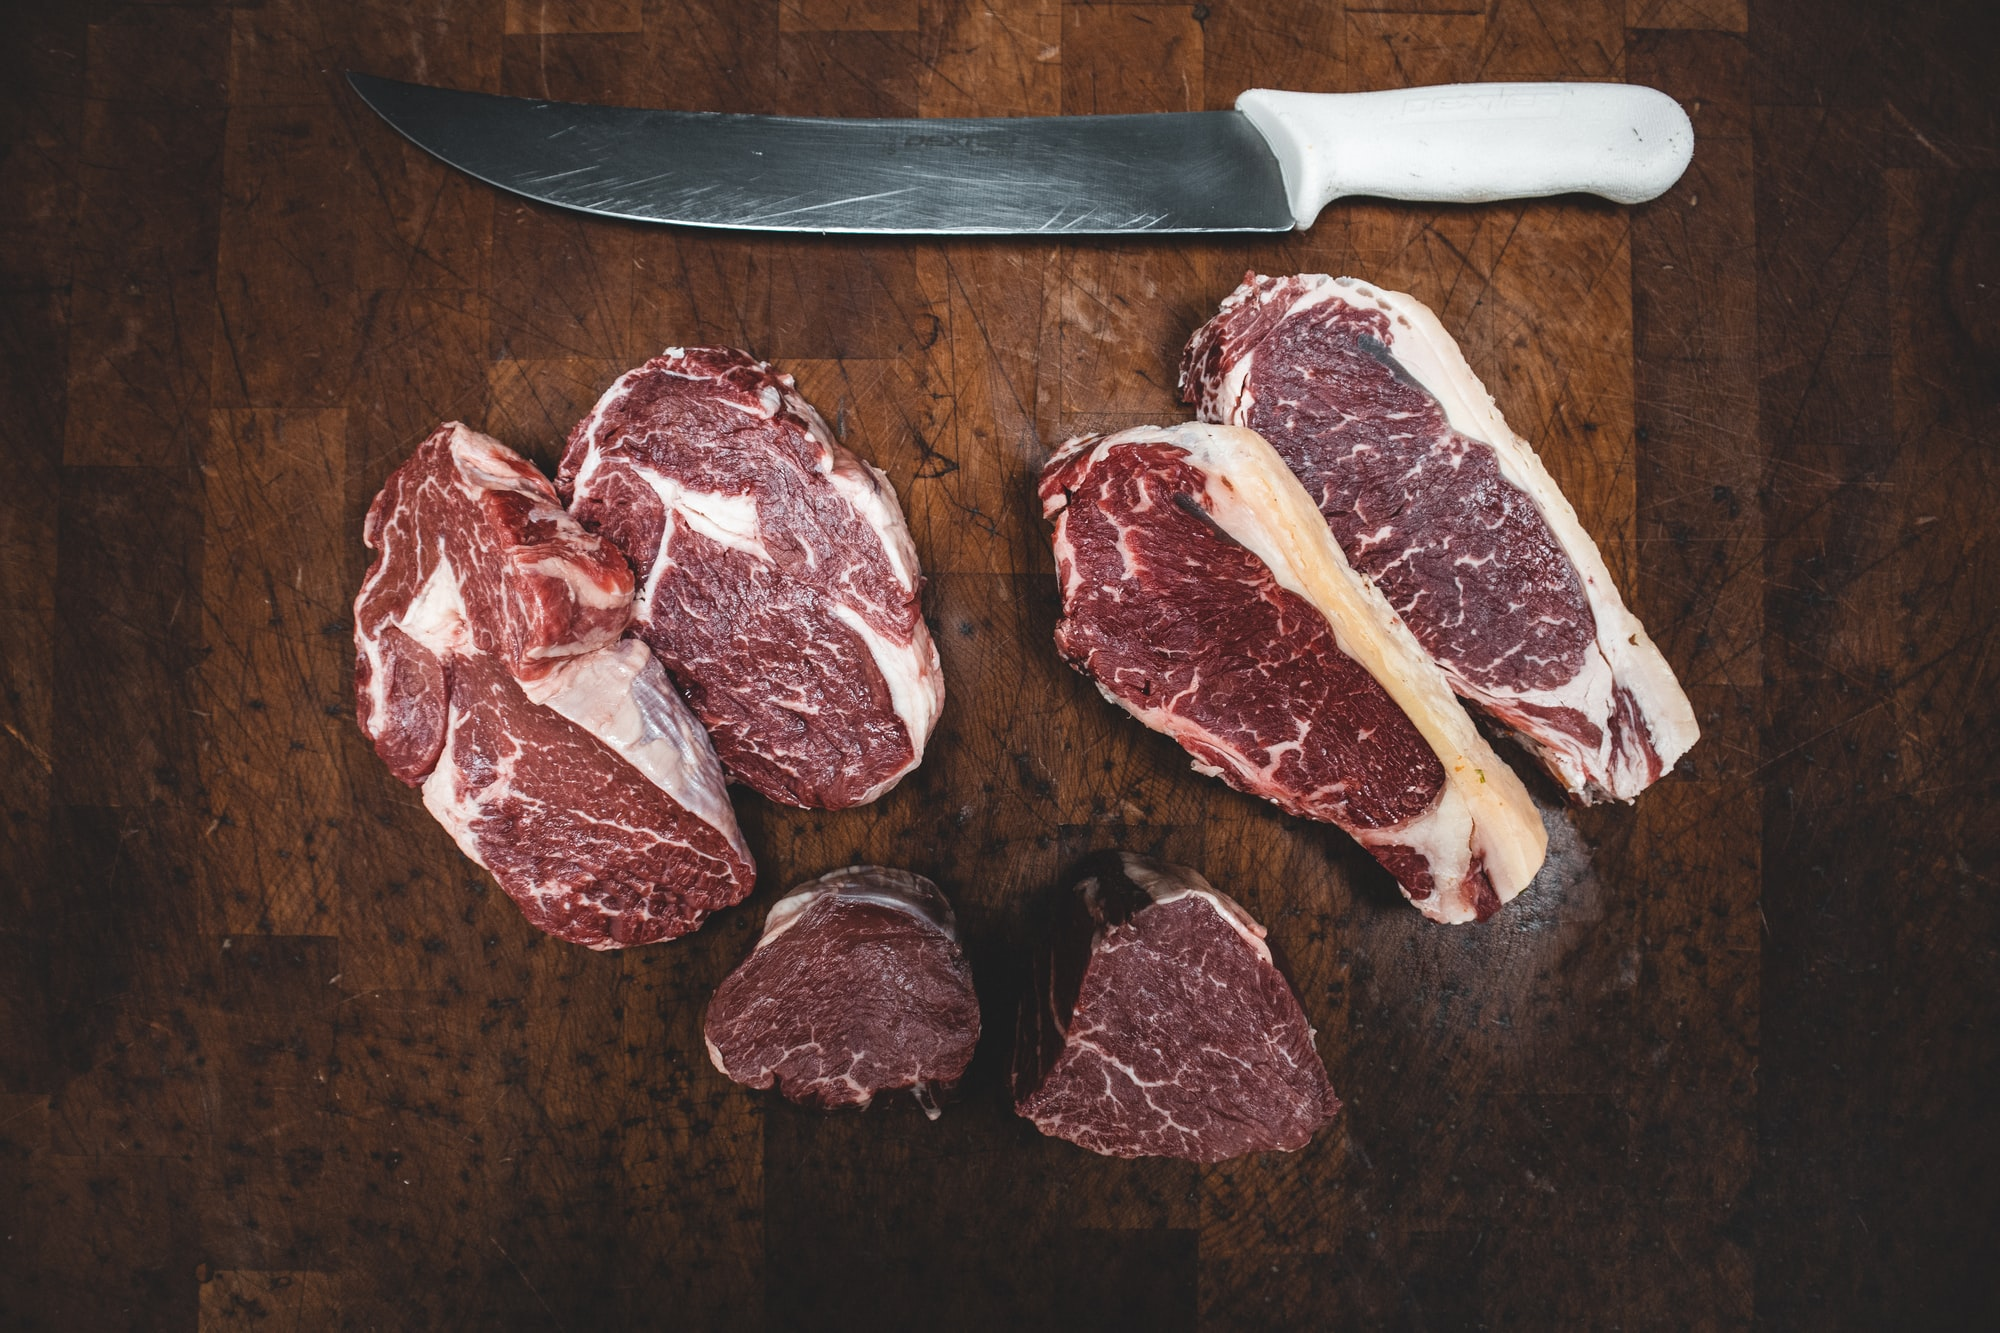 A selection of steaks and a carving knife, arranged on a wooden cutting table.